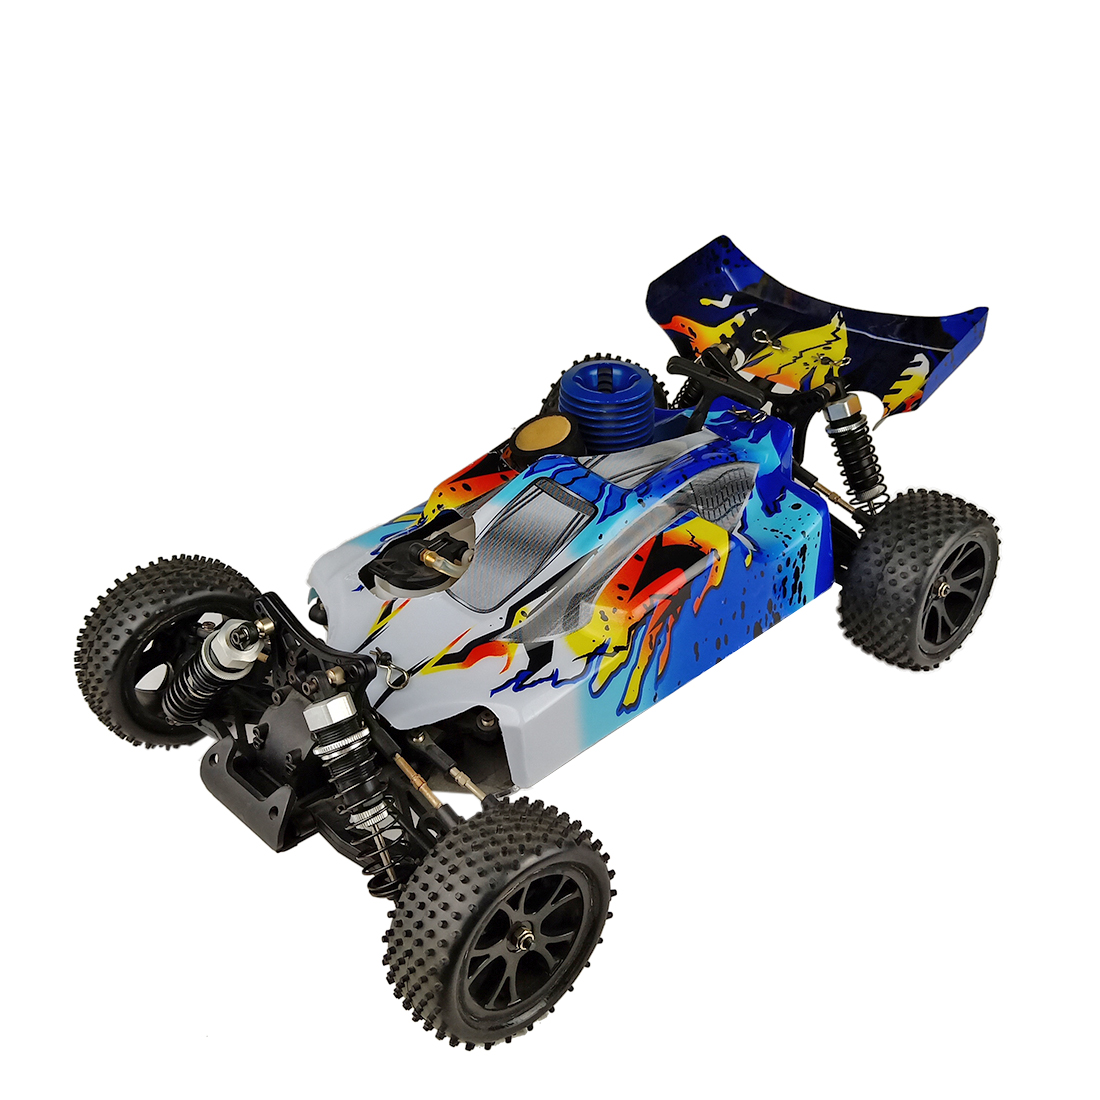 VRX RH1006 <font><b>1/10</b></font> <font><b>Scale</b></font> 4WD Nitro RTR Off-road Buggy High Speed 2.4GHz <font><b>RC</b></font> Car(With Force.18 Methanol Engine) - R0070BL Blue White image